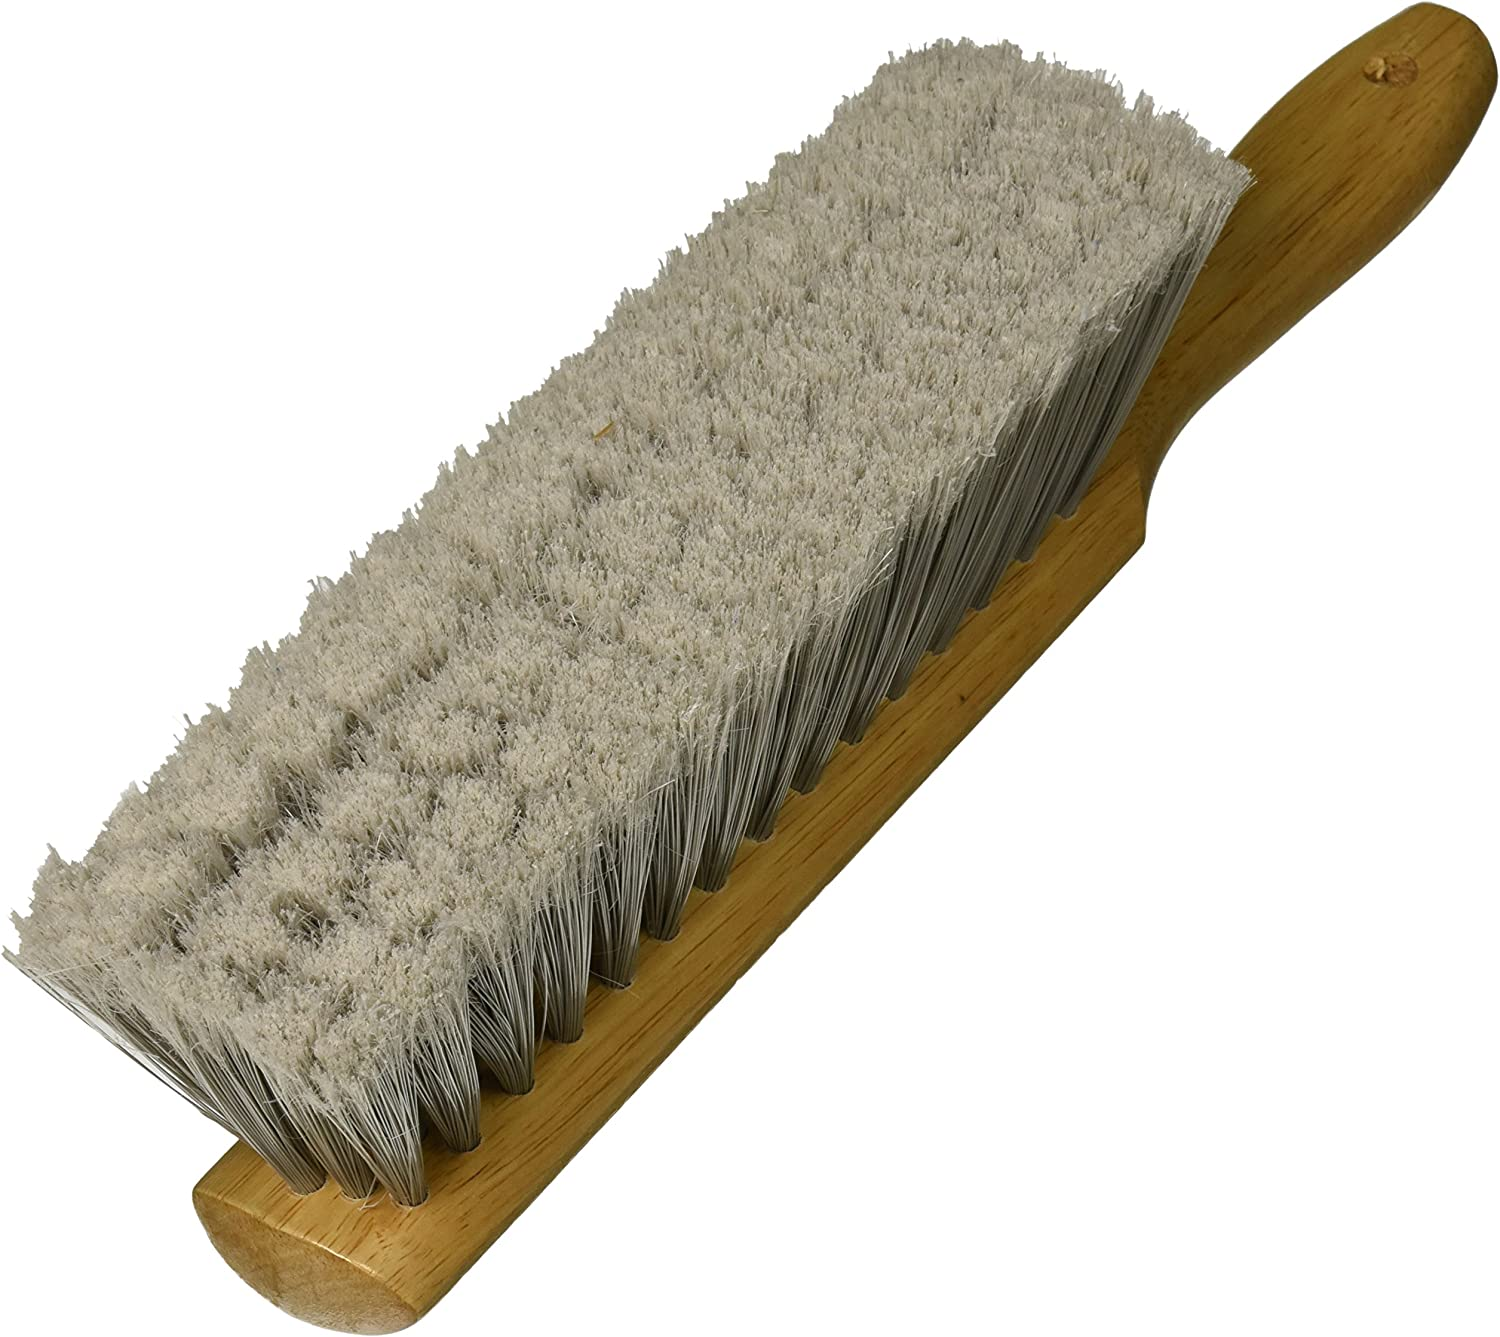 Bon 84-155 13-1//2-Inch Soft Silver Tipped Flagged Counter Brush